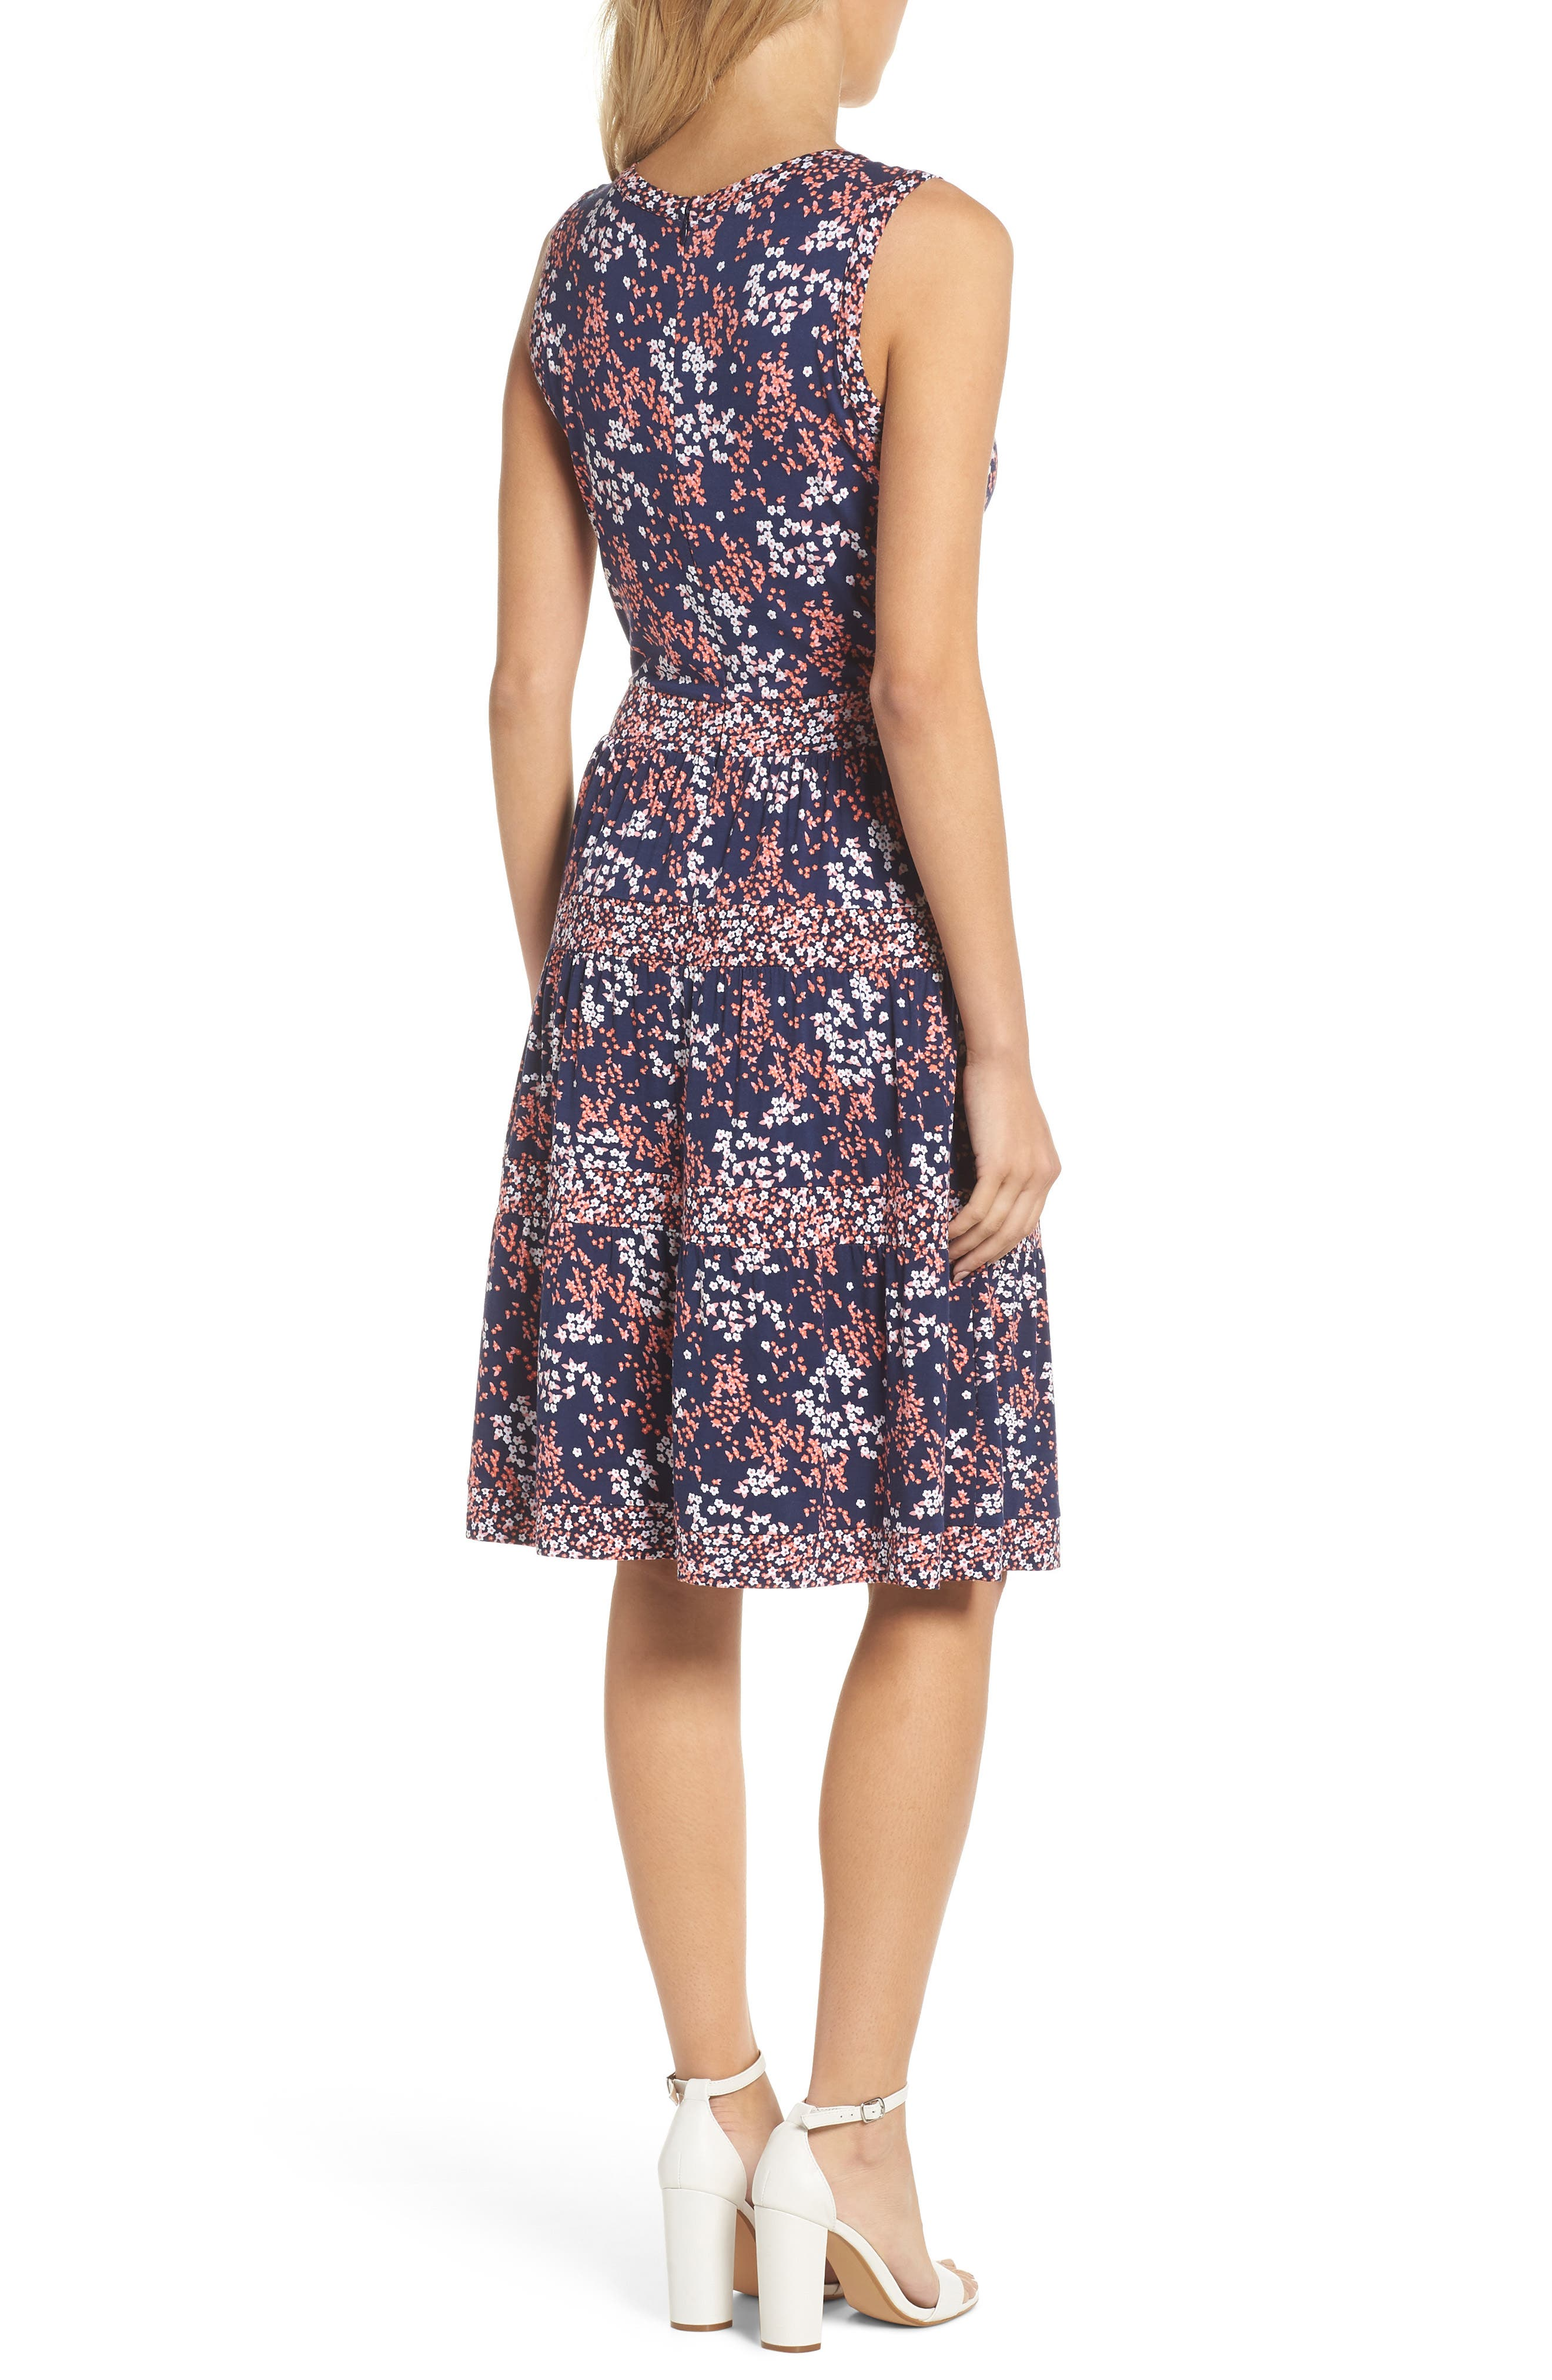 Blooms Border Tiered Dress,                             Alternate thumbnail 2, color,                             678